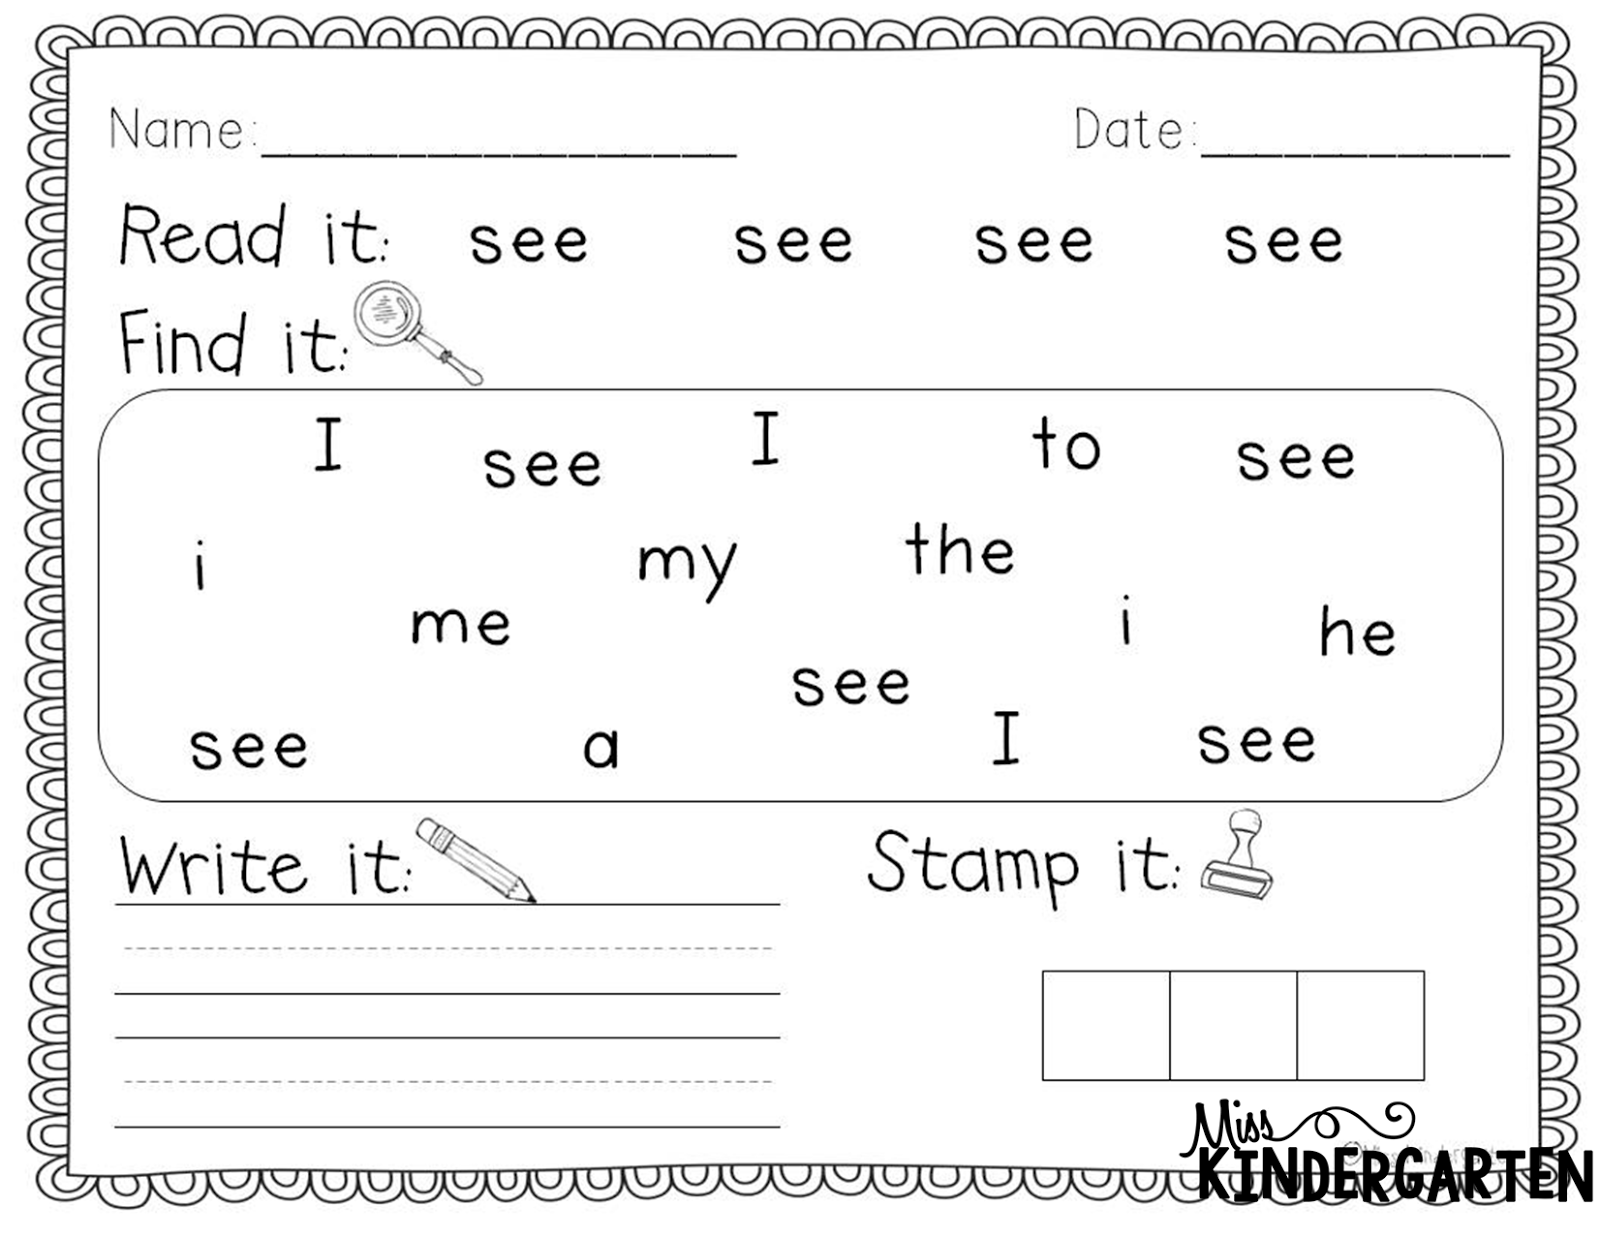 Worksheet How To Learn Sight Words For Kindergarten sight word practice miss kindergarten httpwww teacherspayteachers comproductsight word